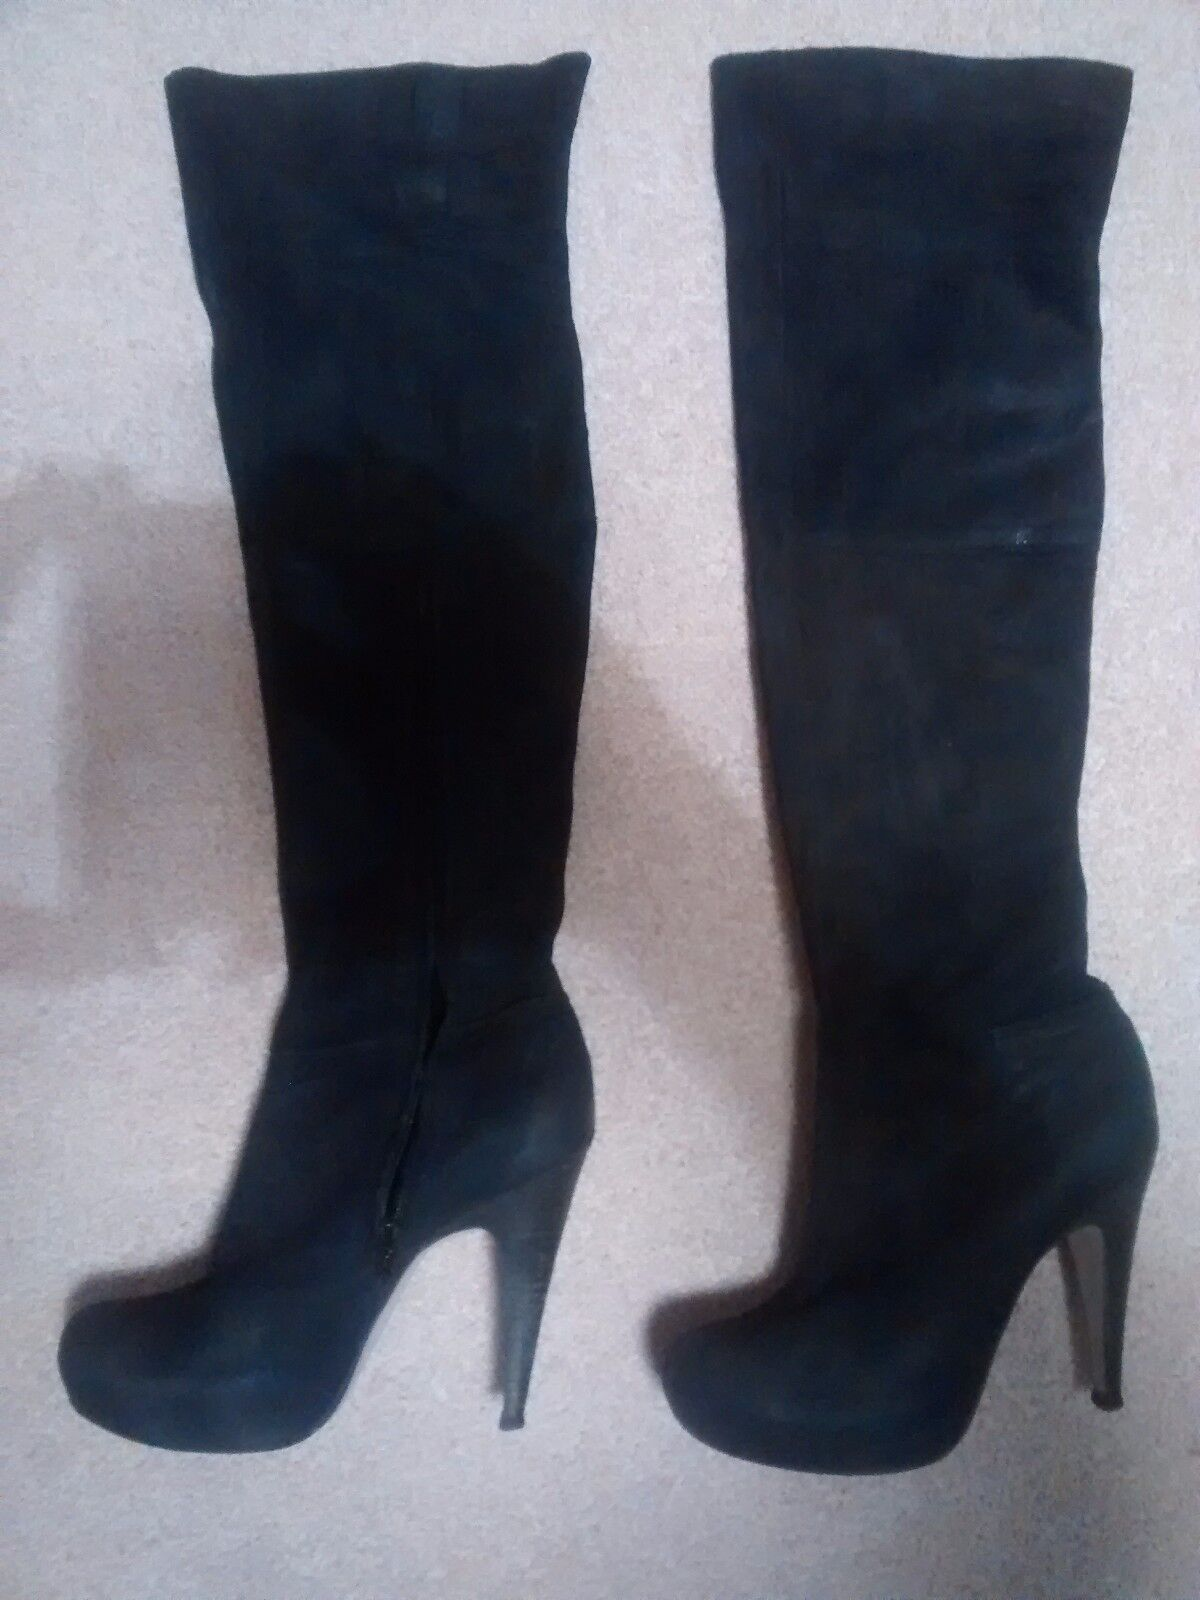 ICONIC 7 KNEE 40 TOPSHOP BLACK SUEDE LEATHER OVER THE KNEE 7 OTK THIGH Stiefel 3c50c2